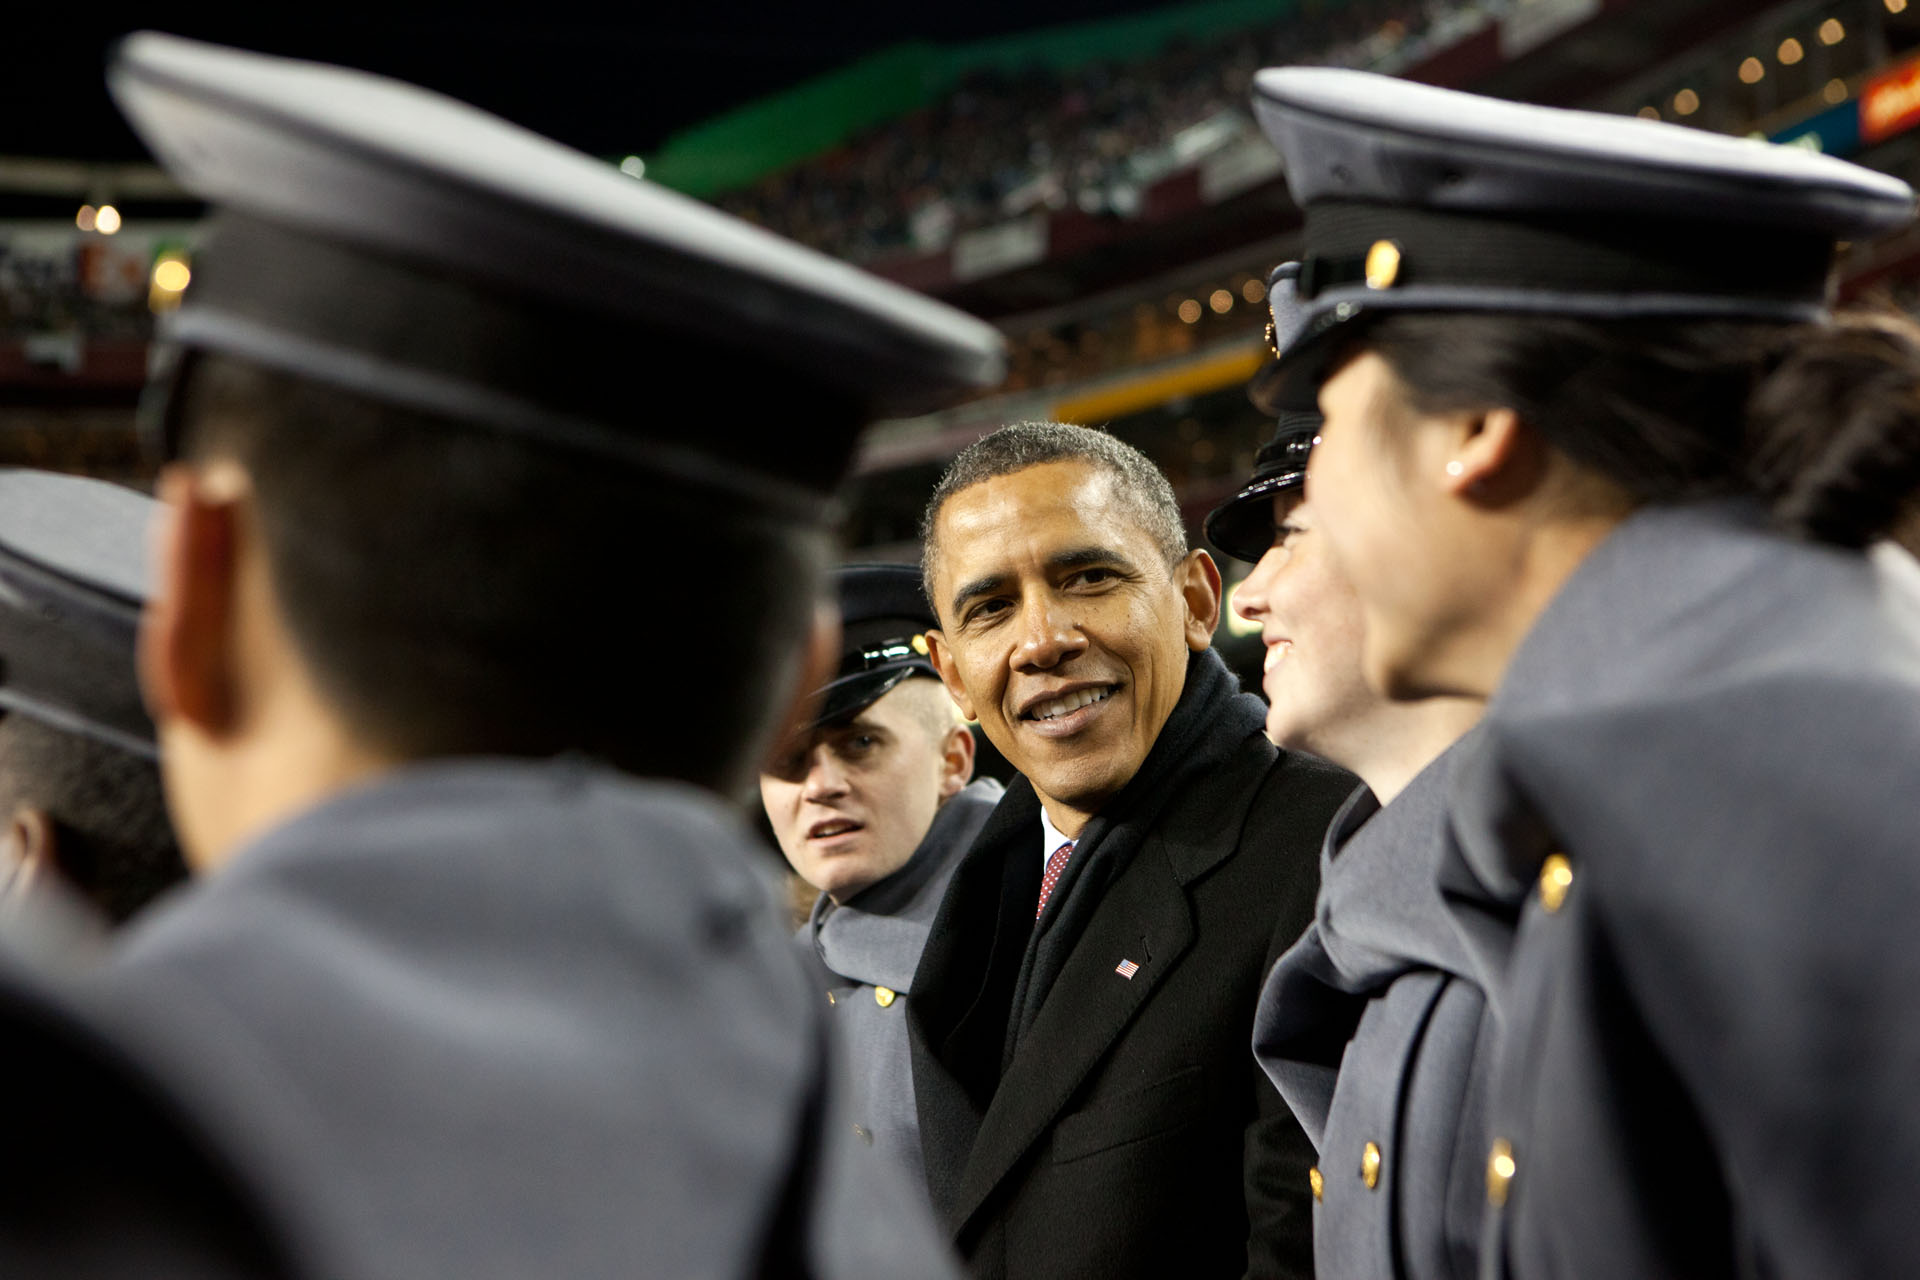 20111210 POTUS Army-Navy game